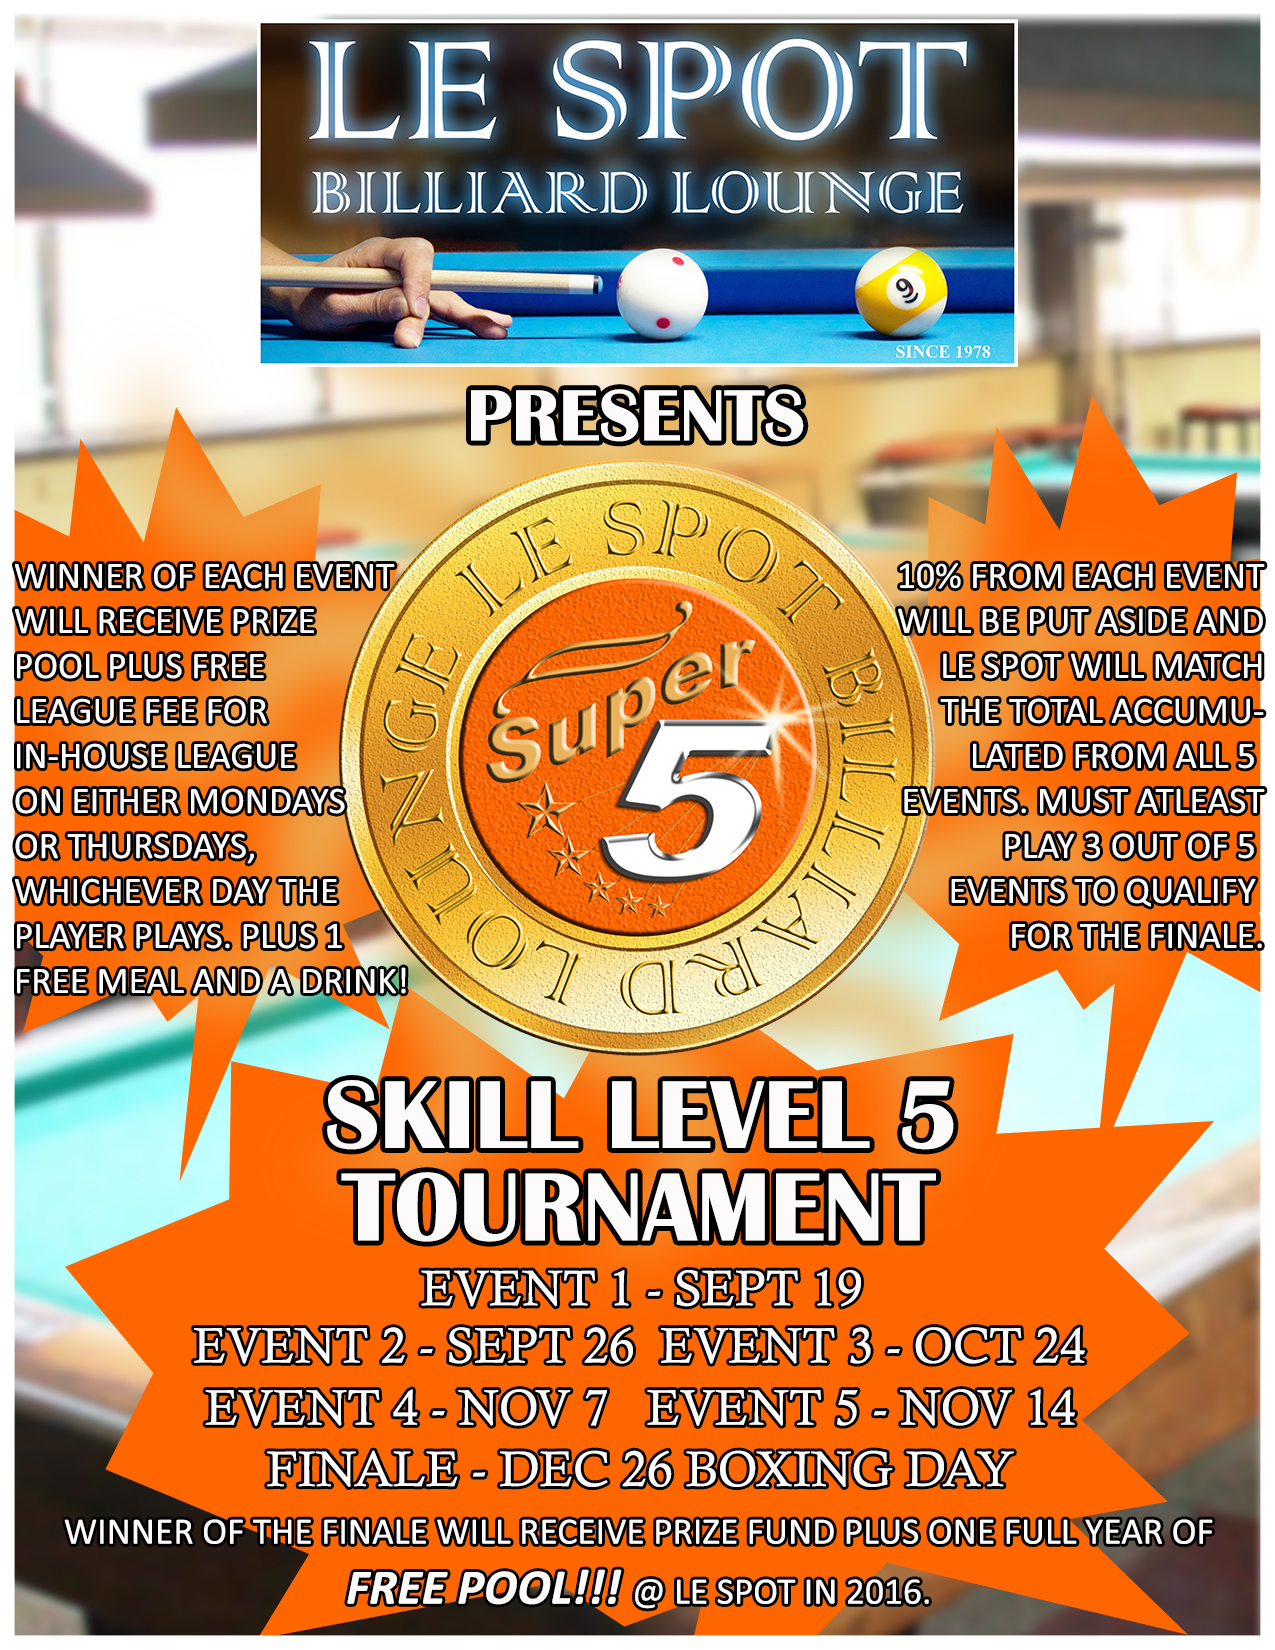 Le Spot Billiard Lounge | Tournaments